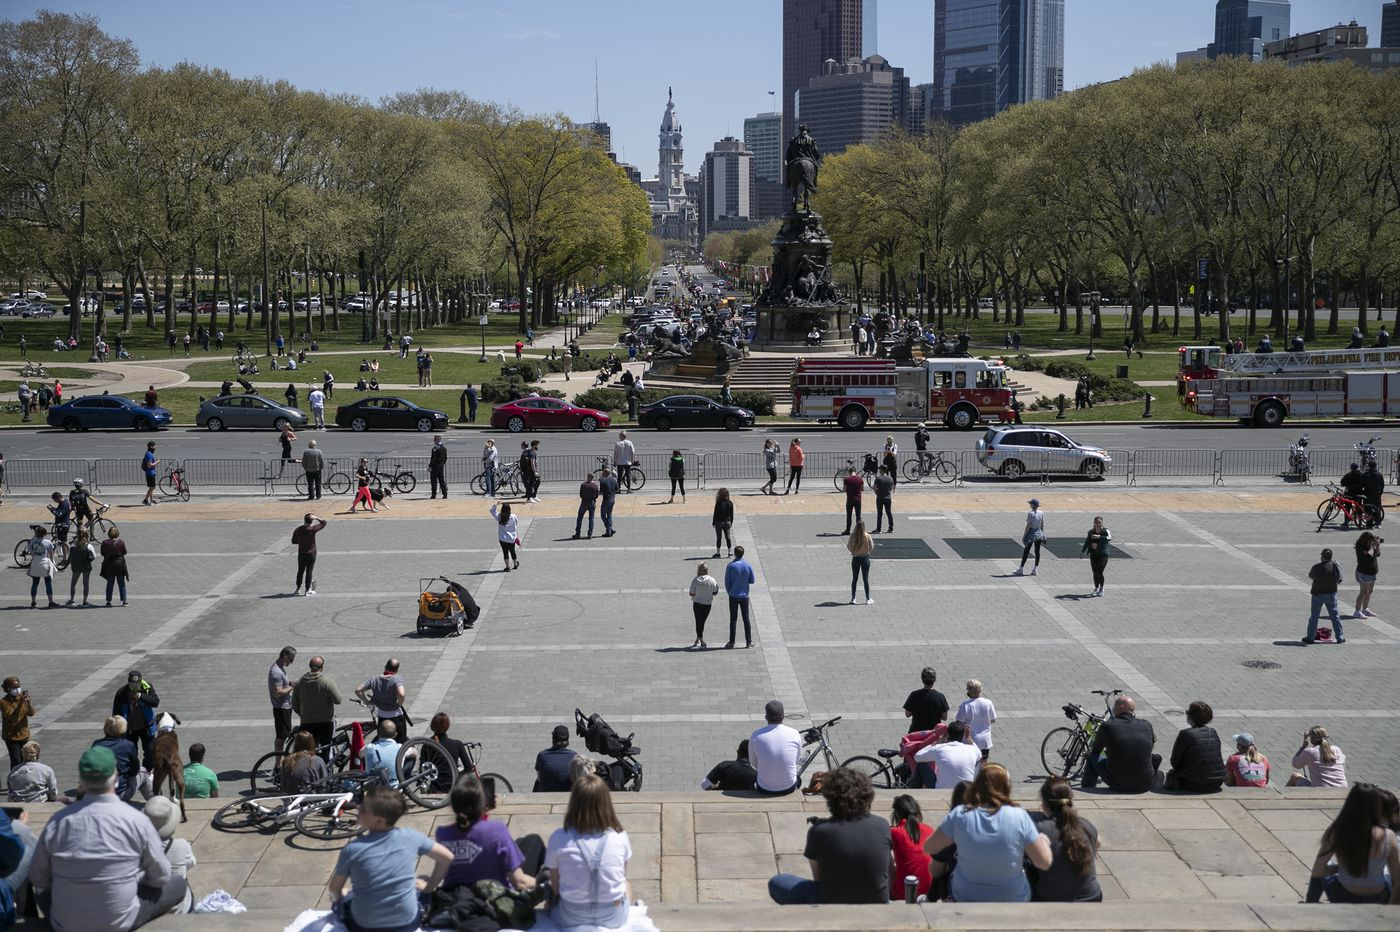 Warm weather draws risky crowds to parks. Here's how Philly can make them safer. | Opinion